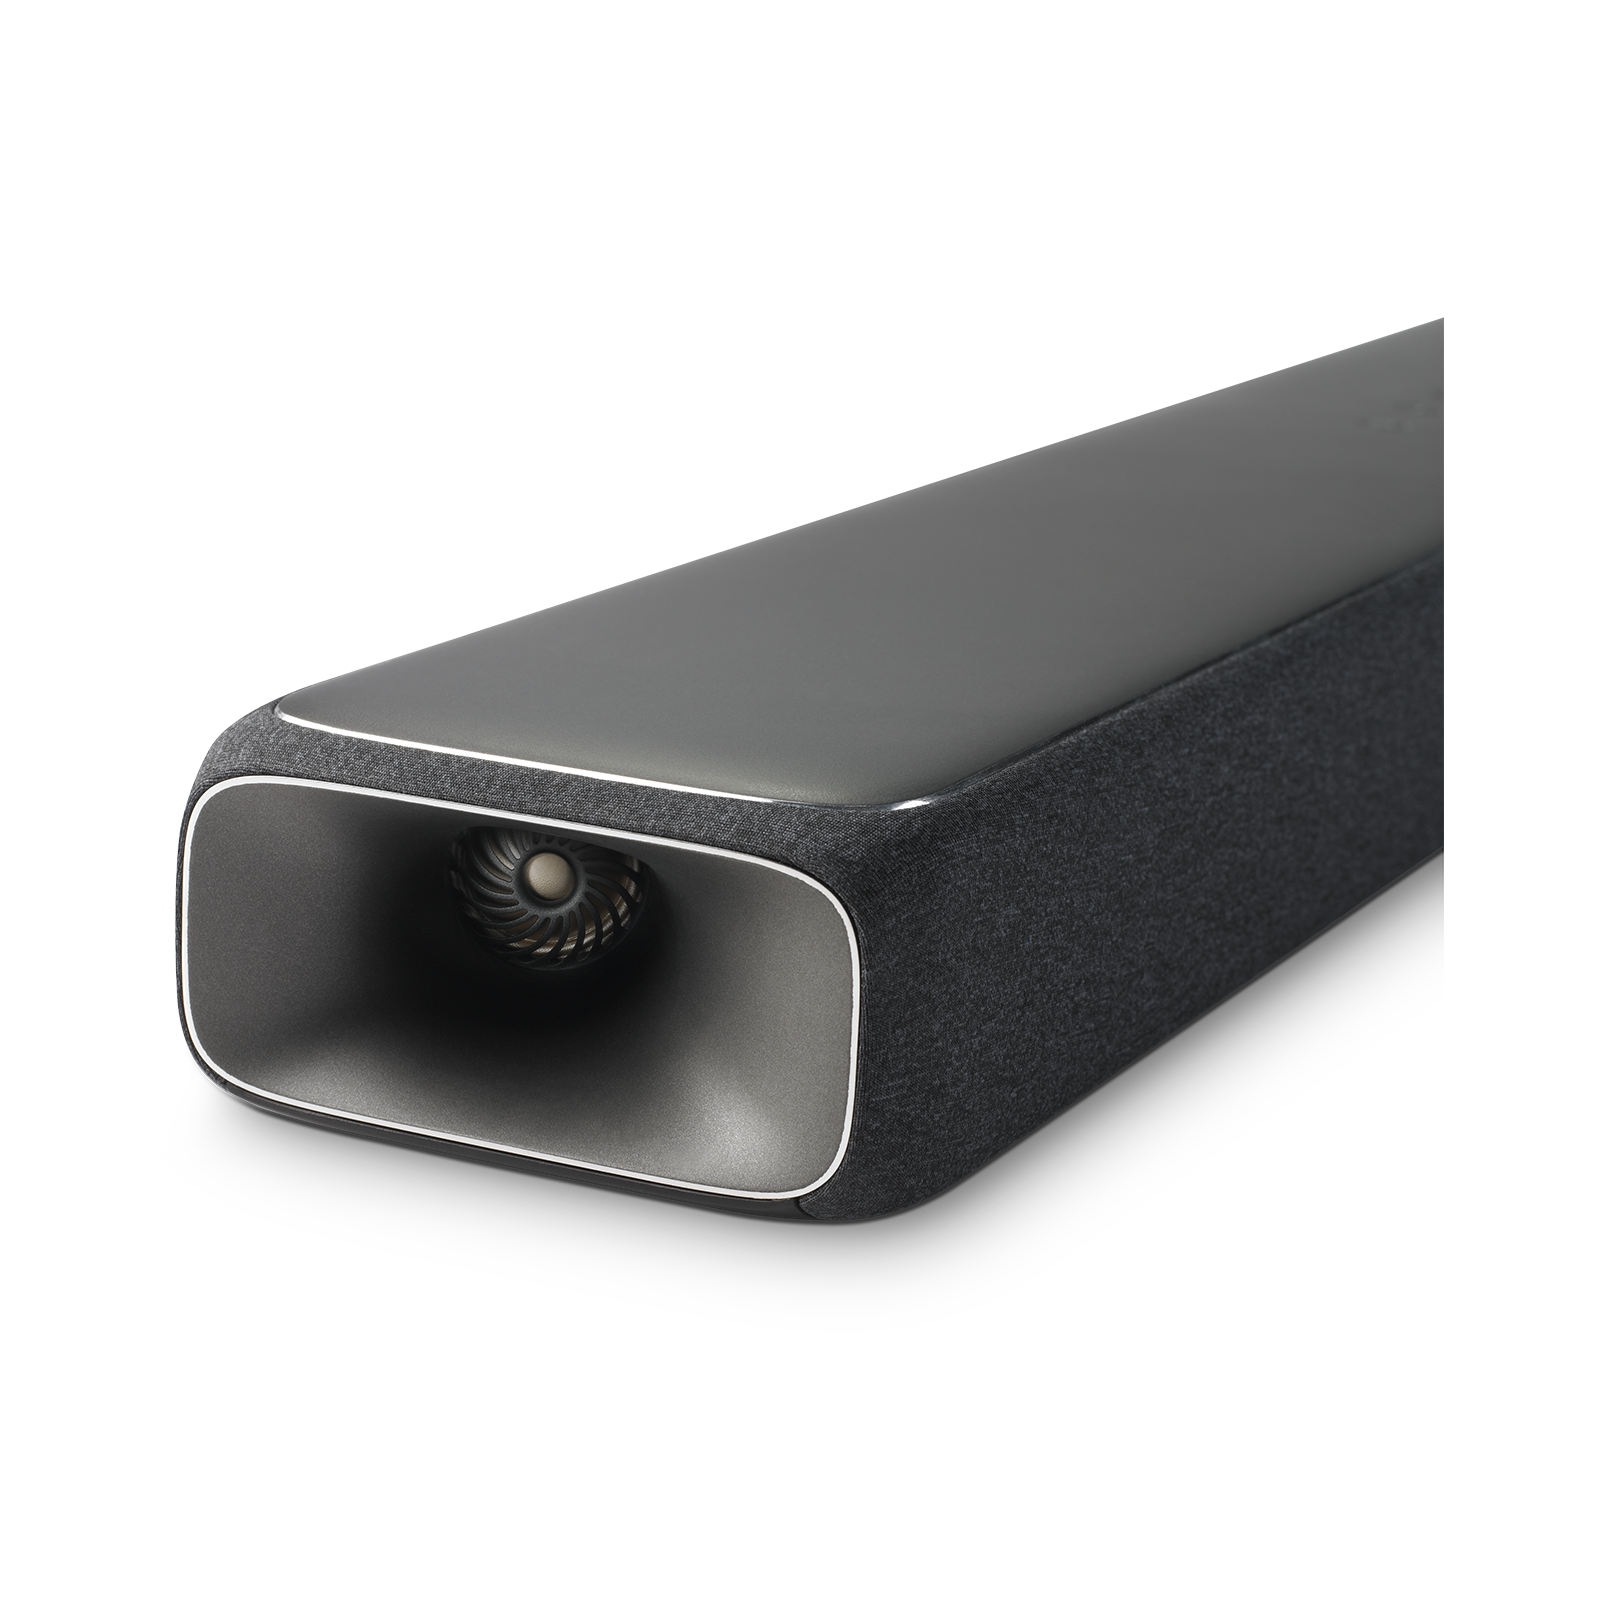 Enchant 800 - Graphite - All in One 8-Channel Soundbar with MultiBeam™ Surround Sound - Detailshot 3